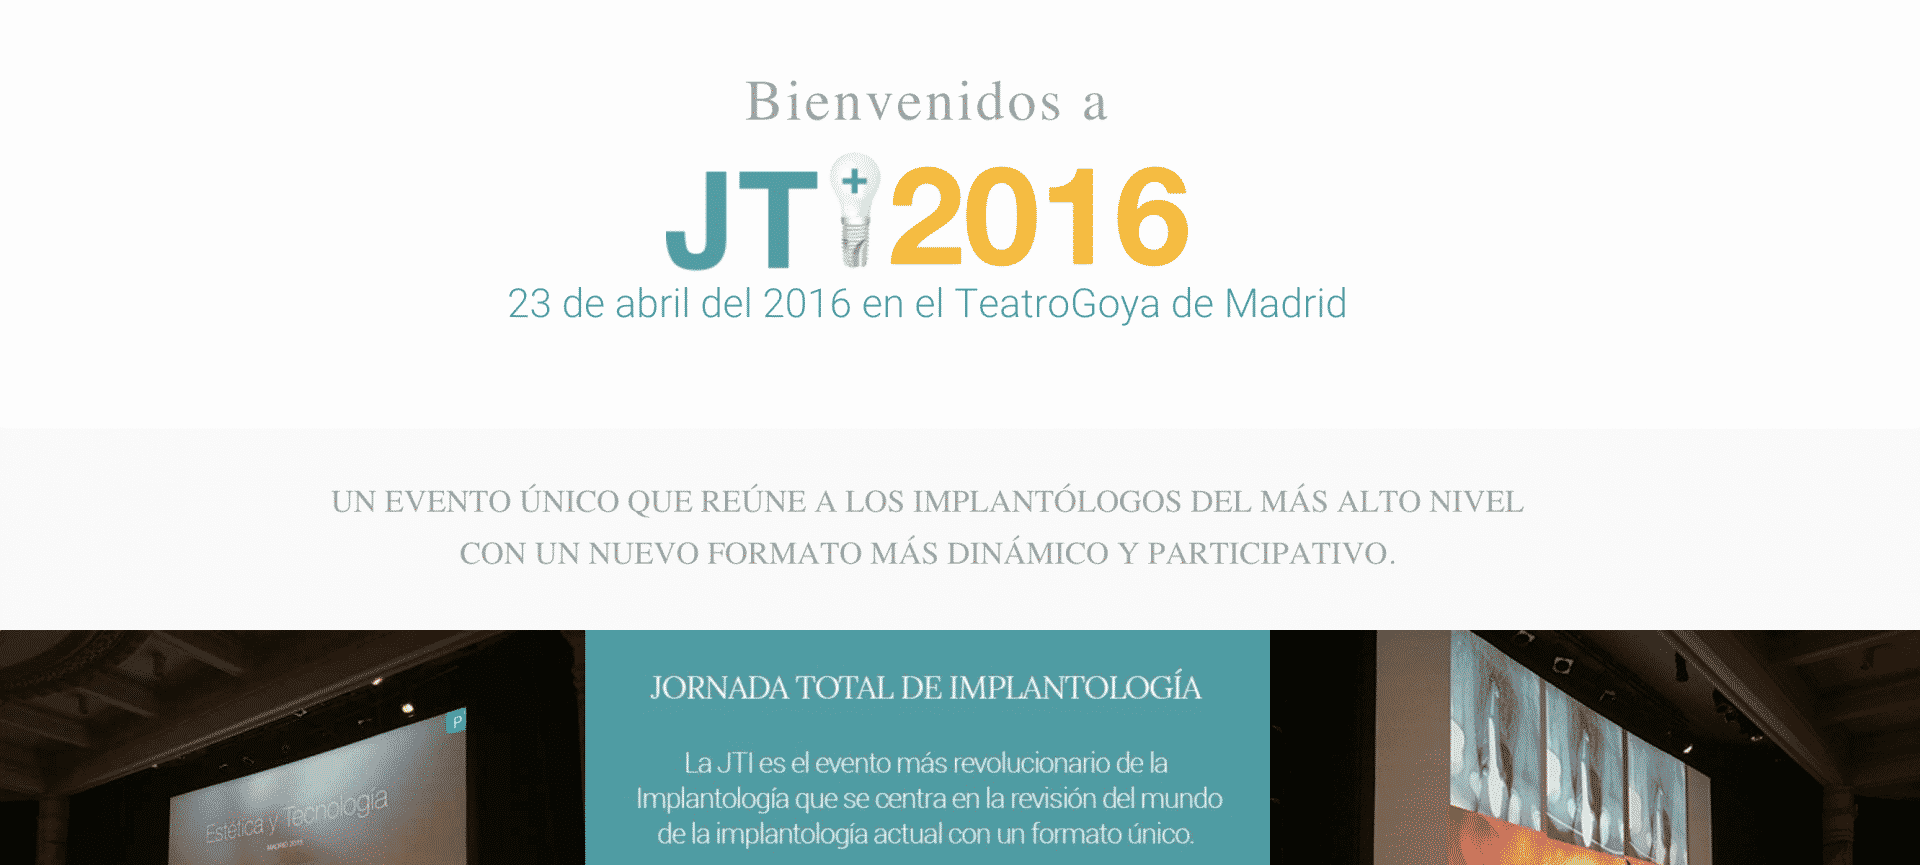 Jornada Total de Implantología 2016